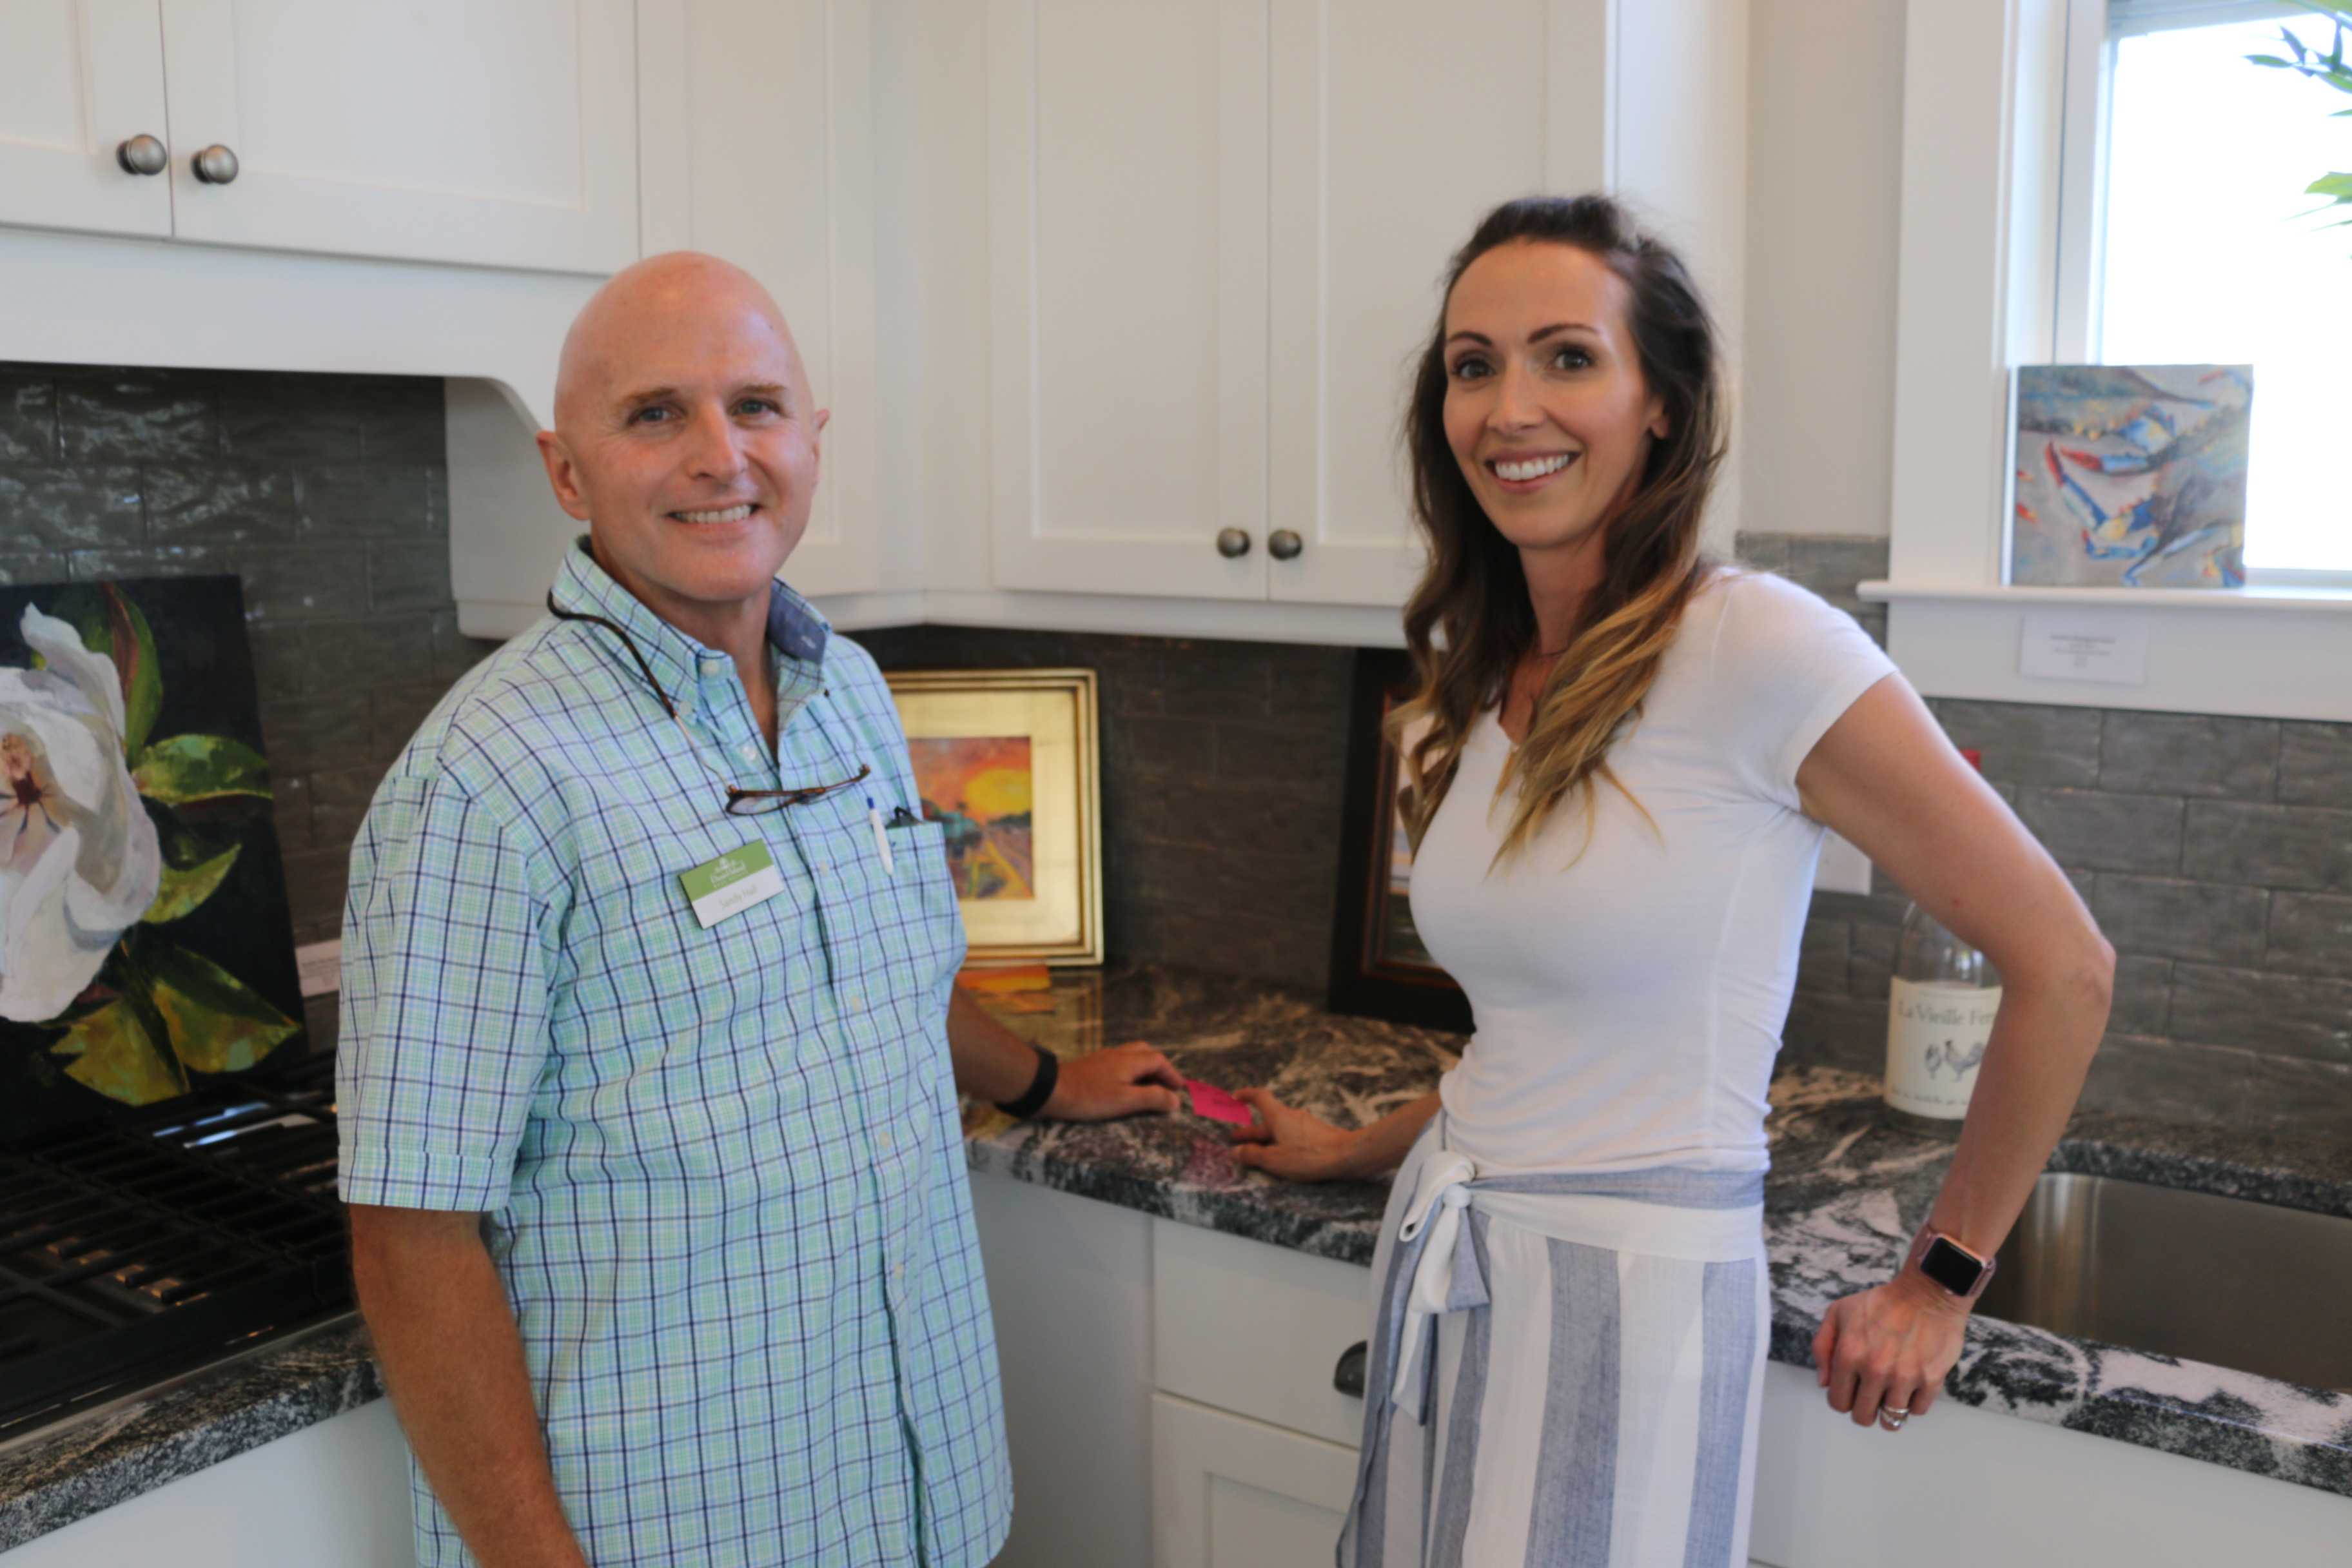 Sandy Hill of Daniel Island Real Estate (left) and artist Sara Shrouds (right).